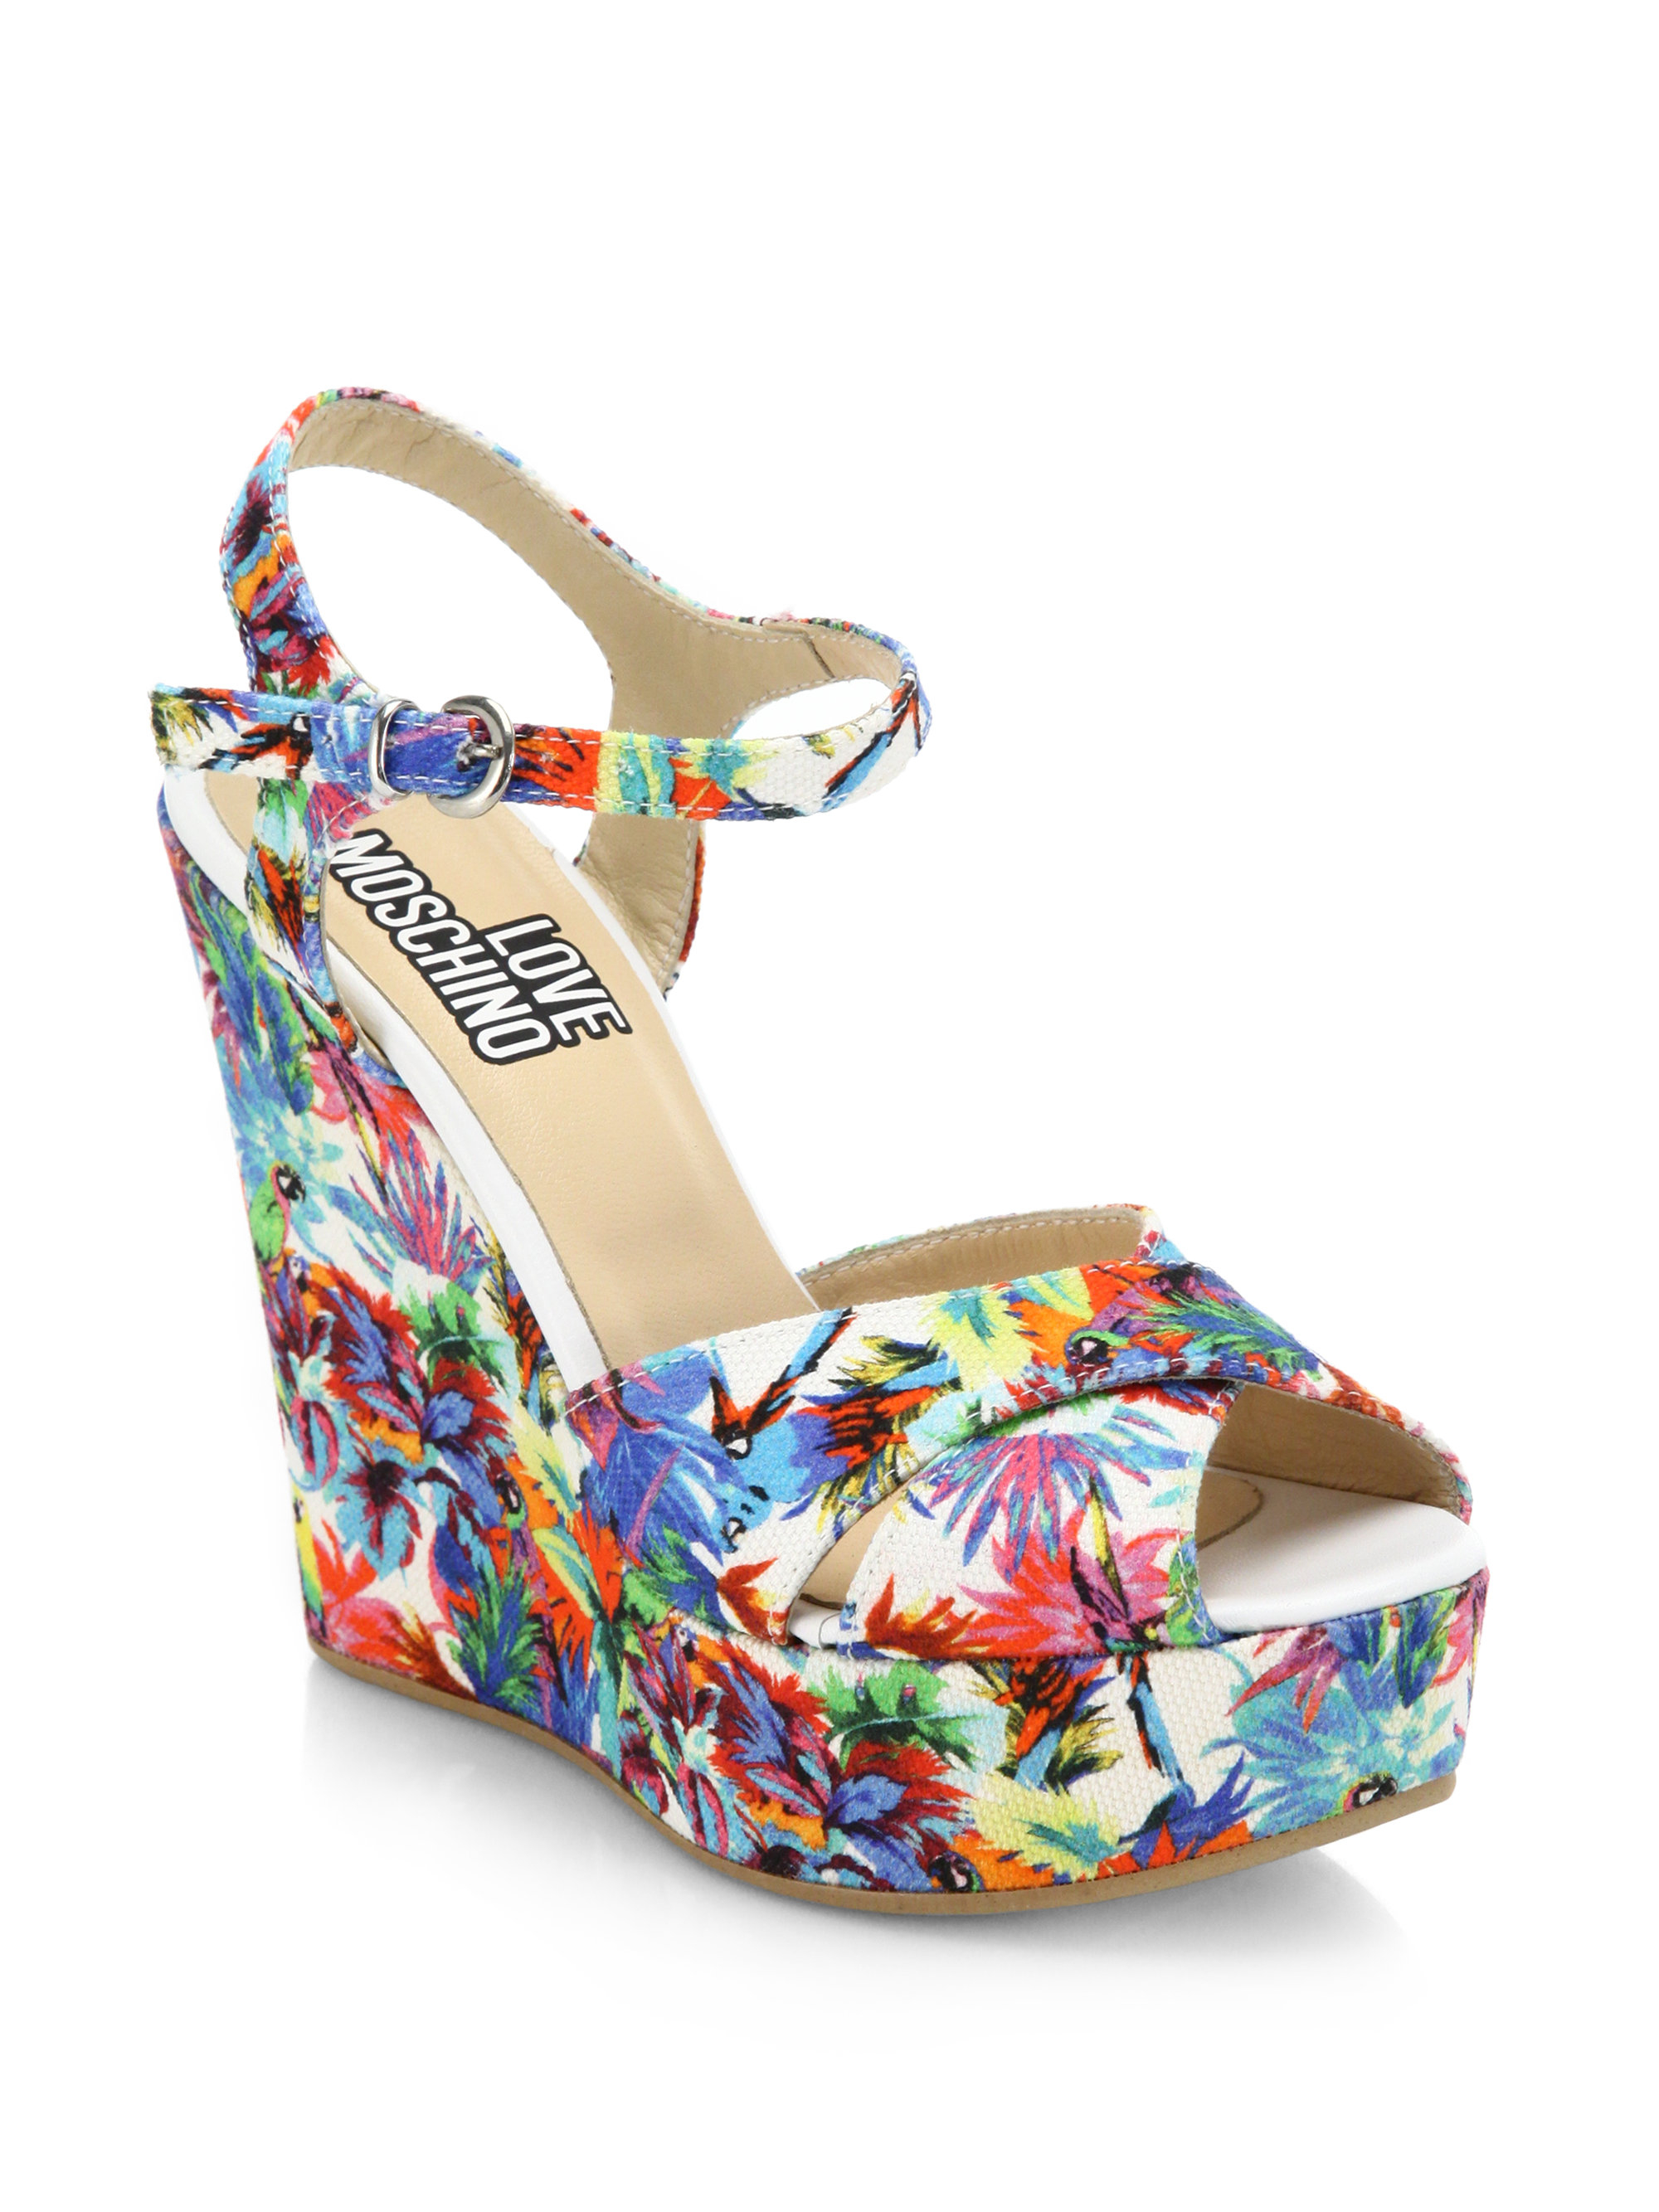 a8642e1d95c Lyst - Love Moschino Jungle Printed Canvas Wedge Sandals